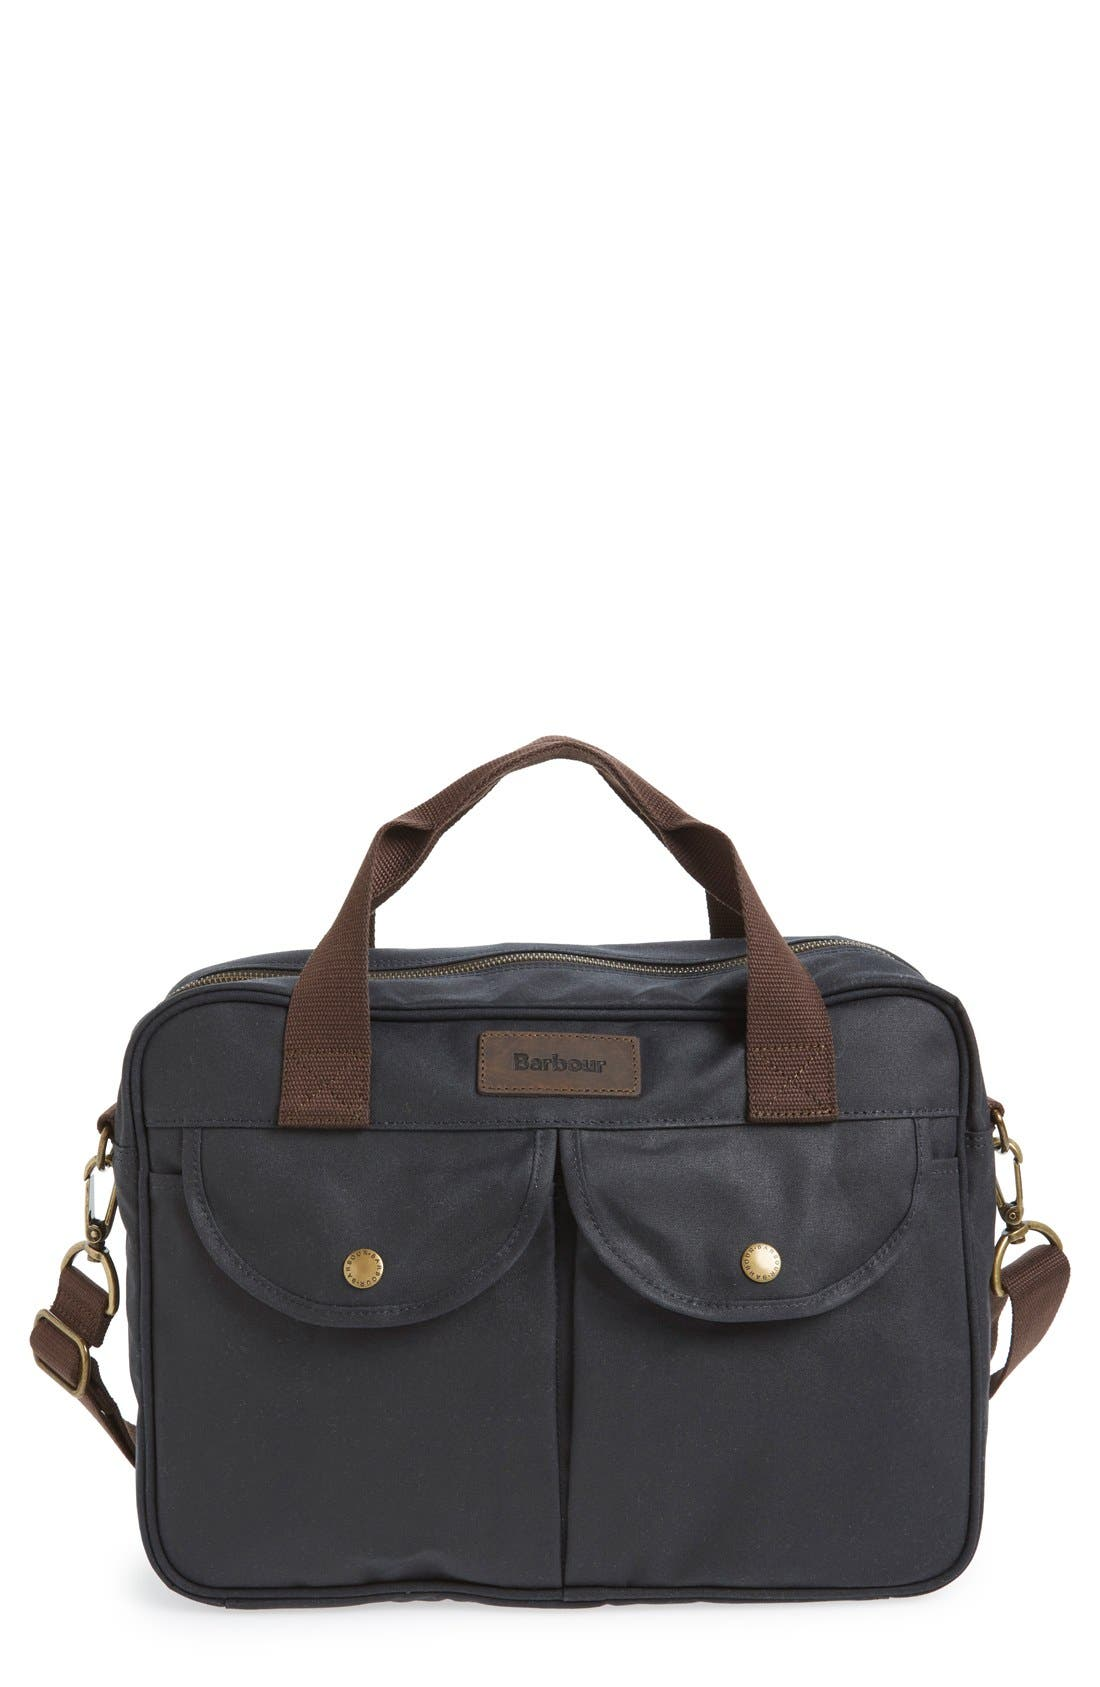 Alternate Image 1 Selected - Barbour 'Longthorpe' Waxed Canvas Laptop Bag